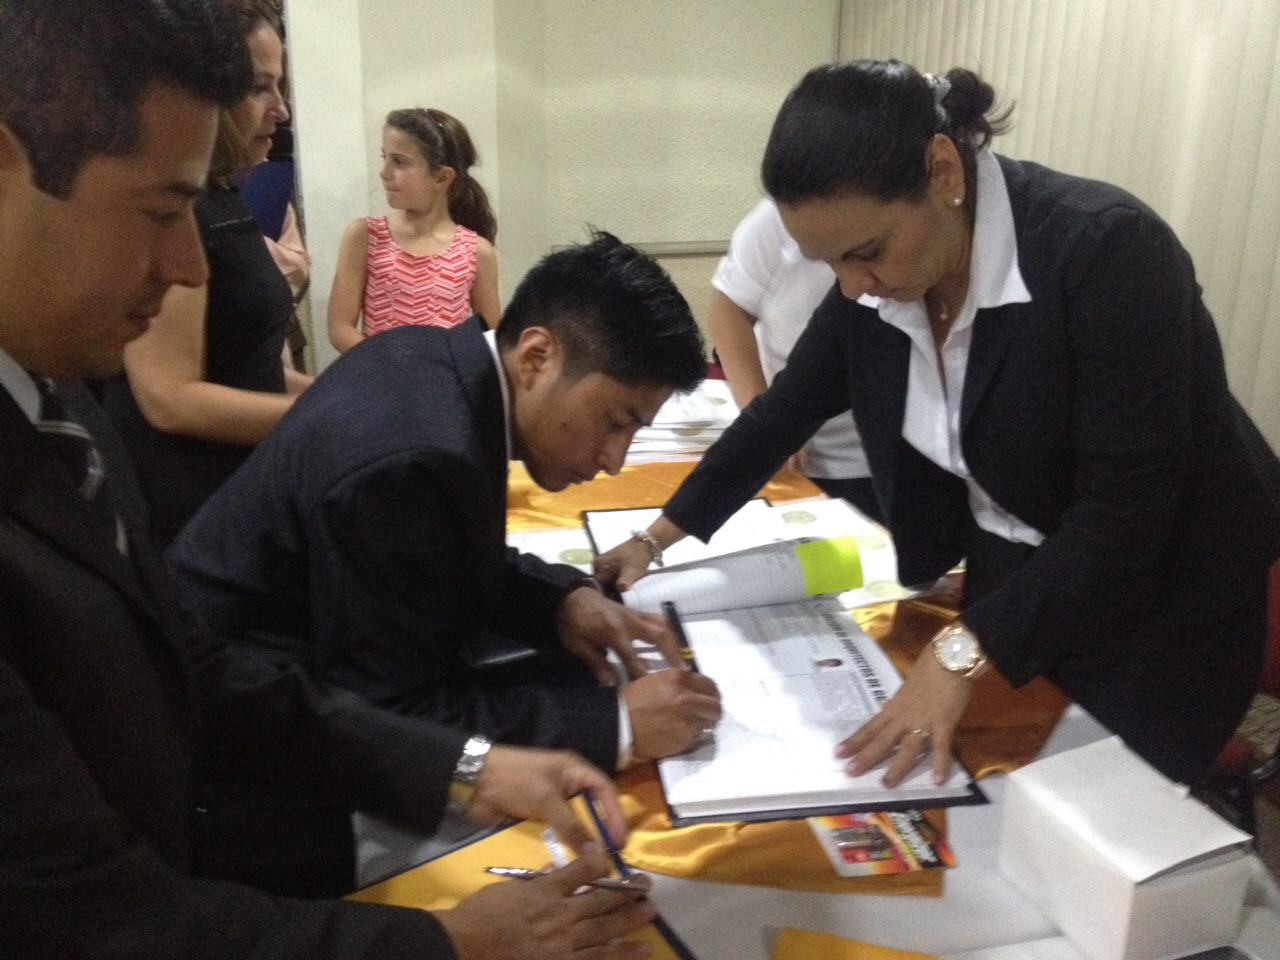 Signing the legal documentation as a now certified architect.